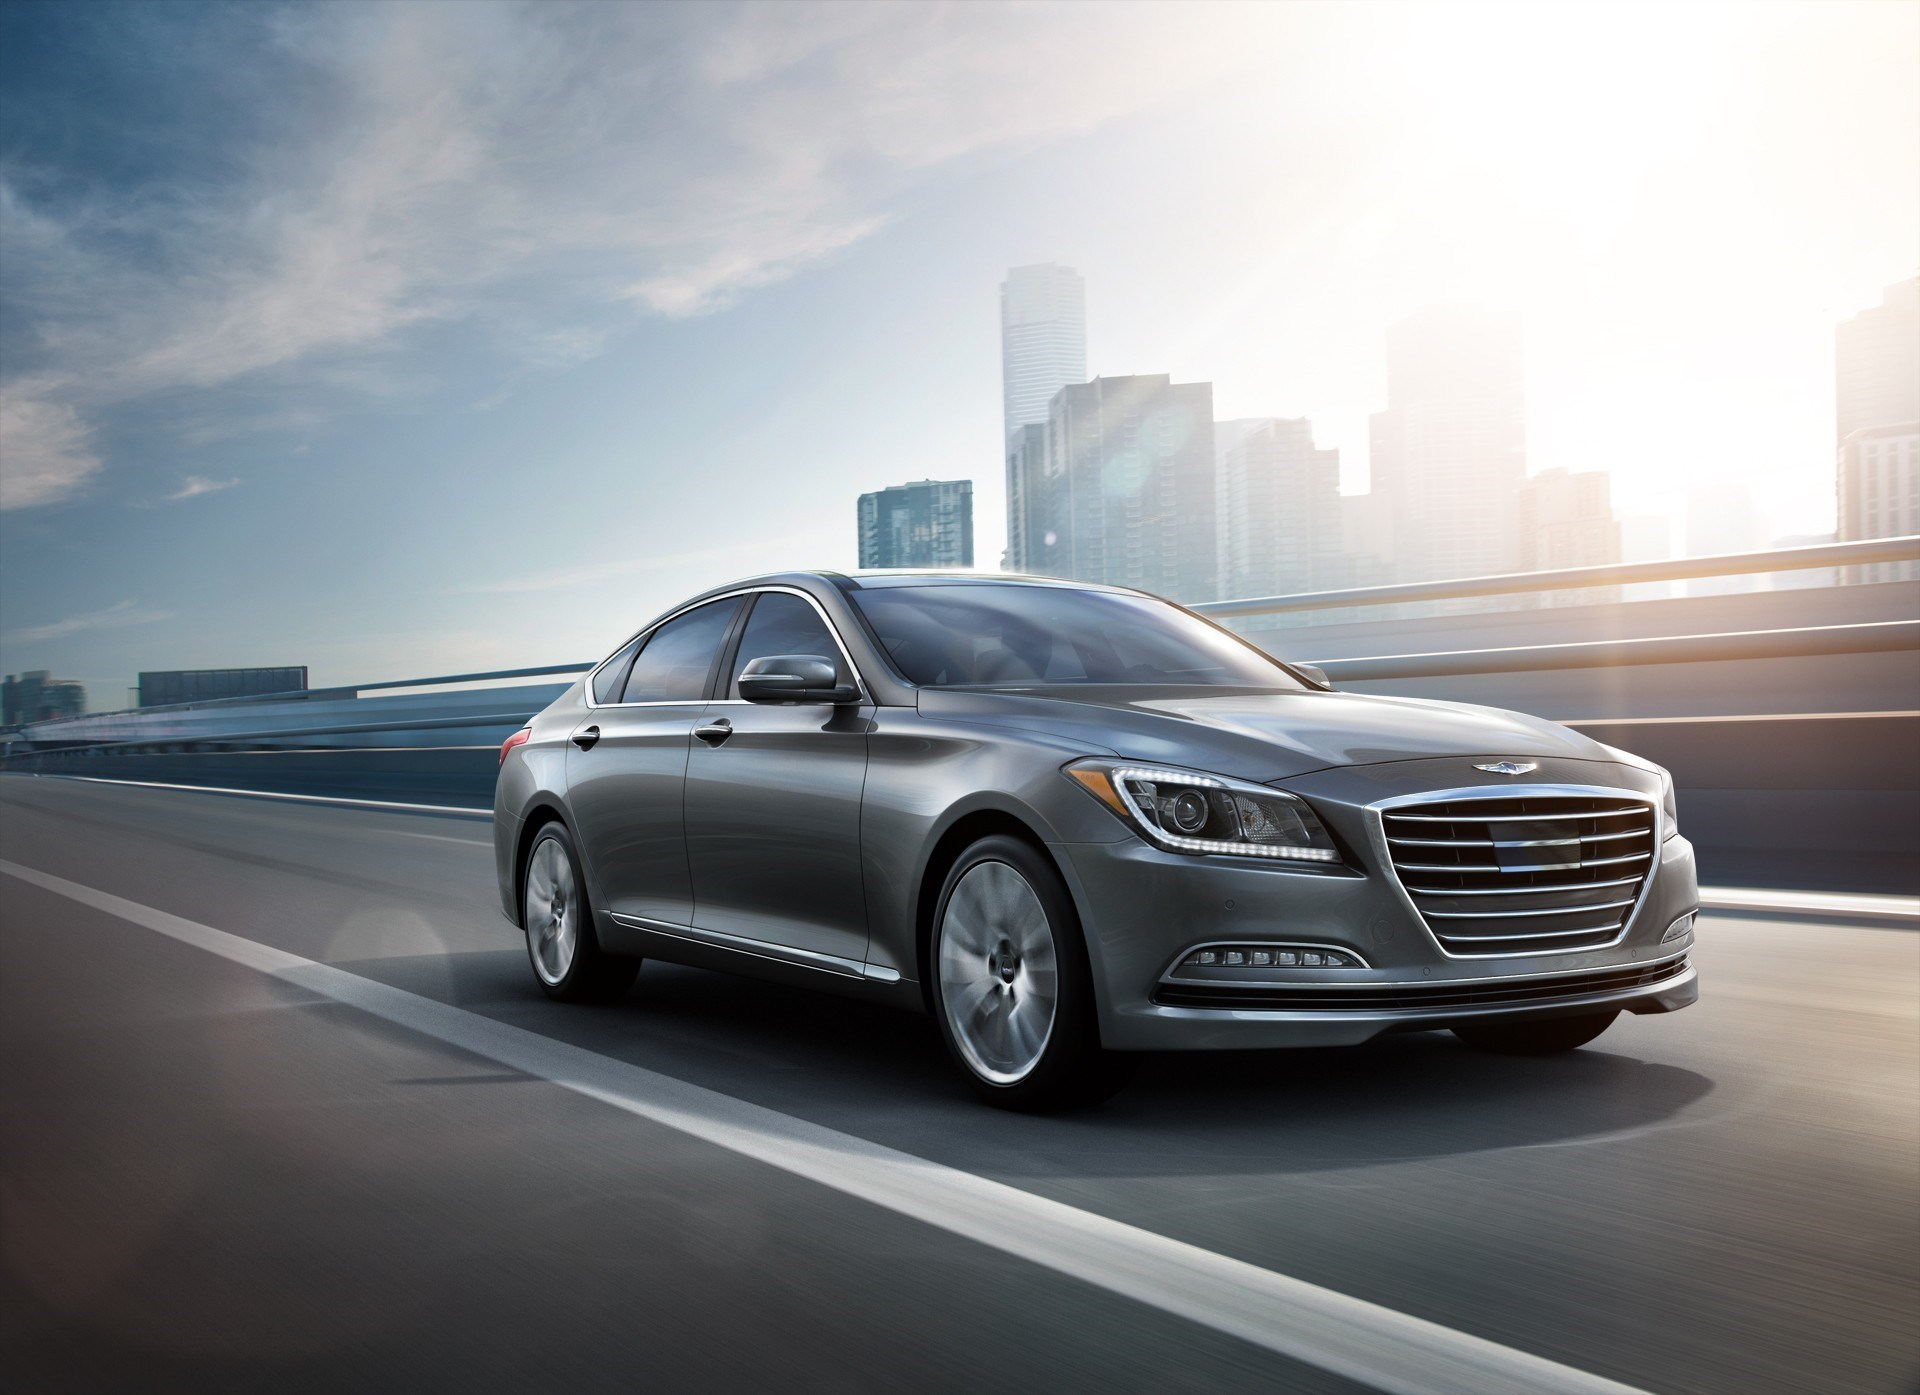 genesis g80 2016 meet hyundai 39 s perception of luxury. Black Bedroom Furniture Sets. Home Design Ideas